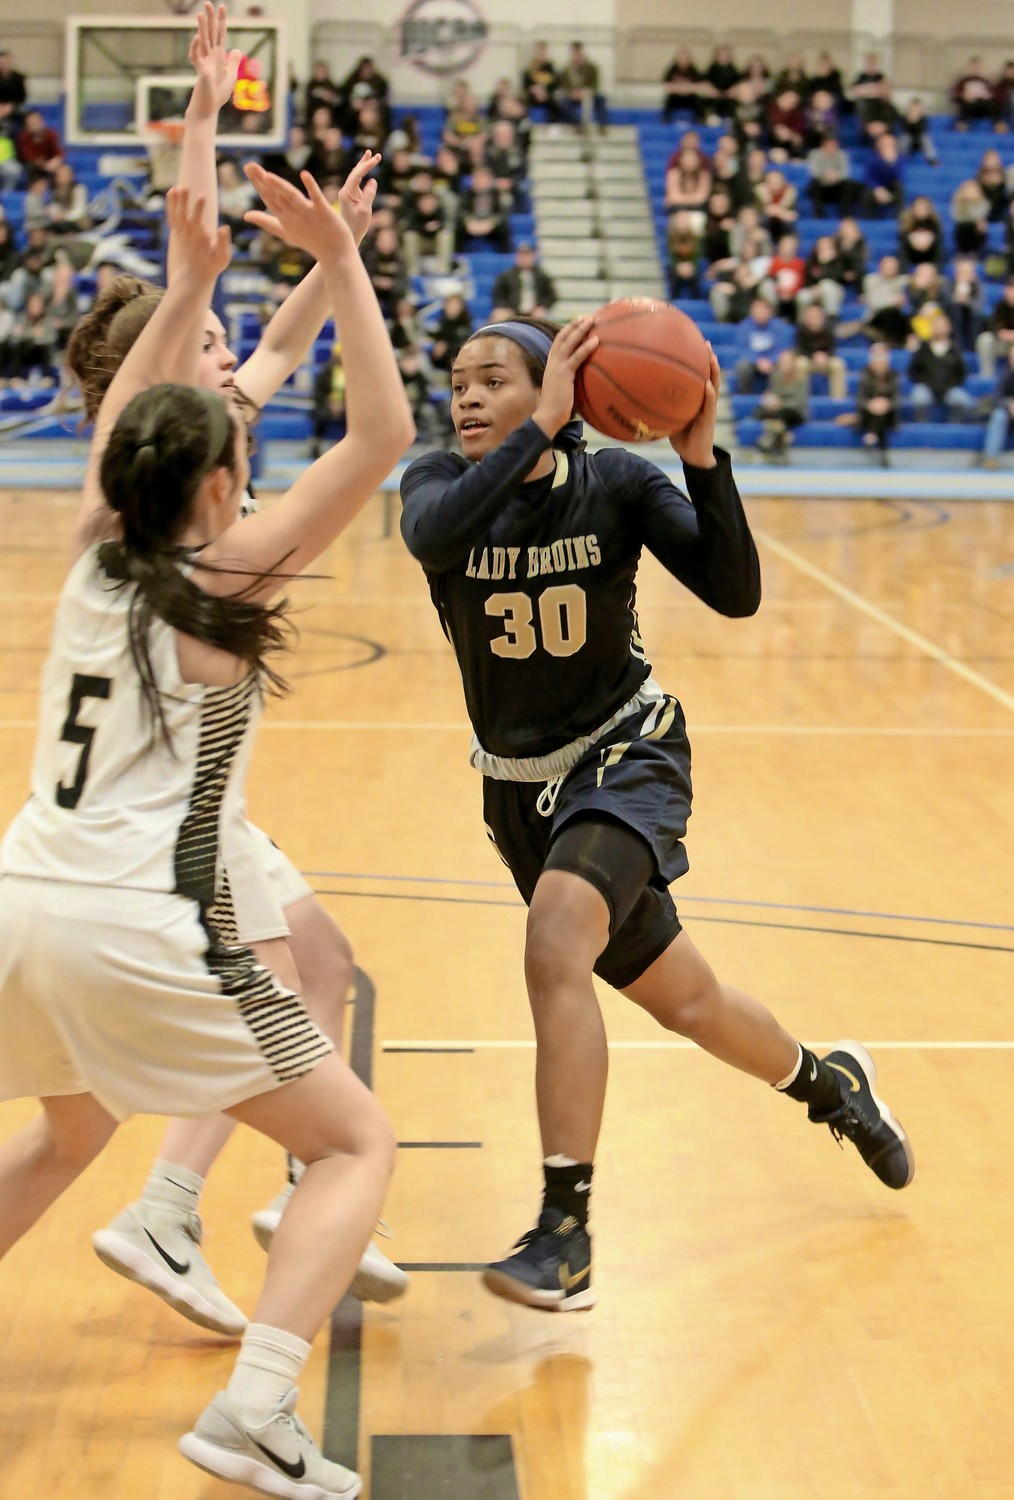 Senior Donnetta Johnson, right, scored 14 points in Baldwin's 78-48 victory over Commack in the L.I. Class AA championship game.